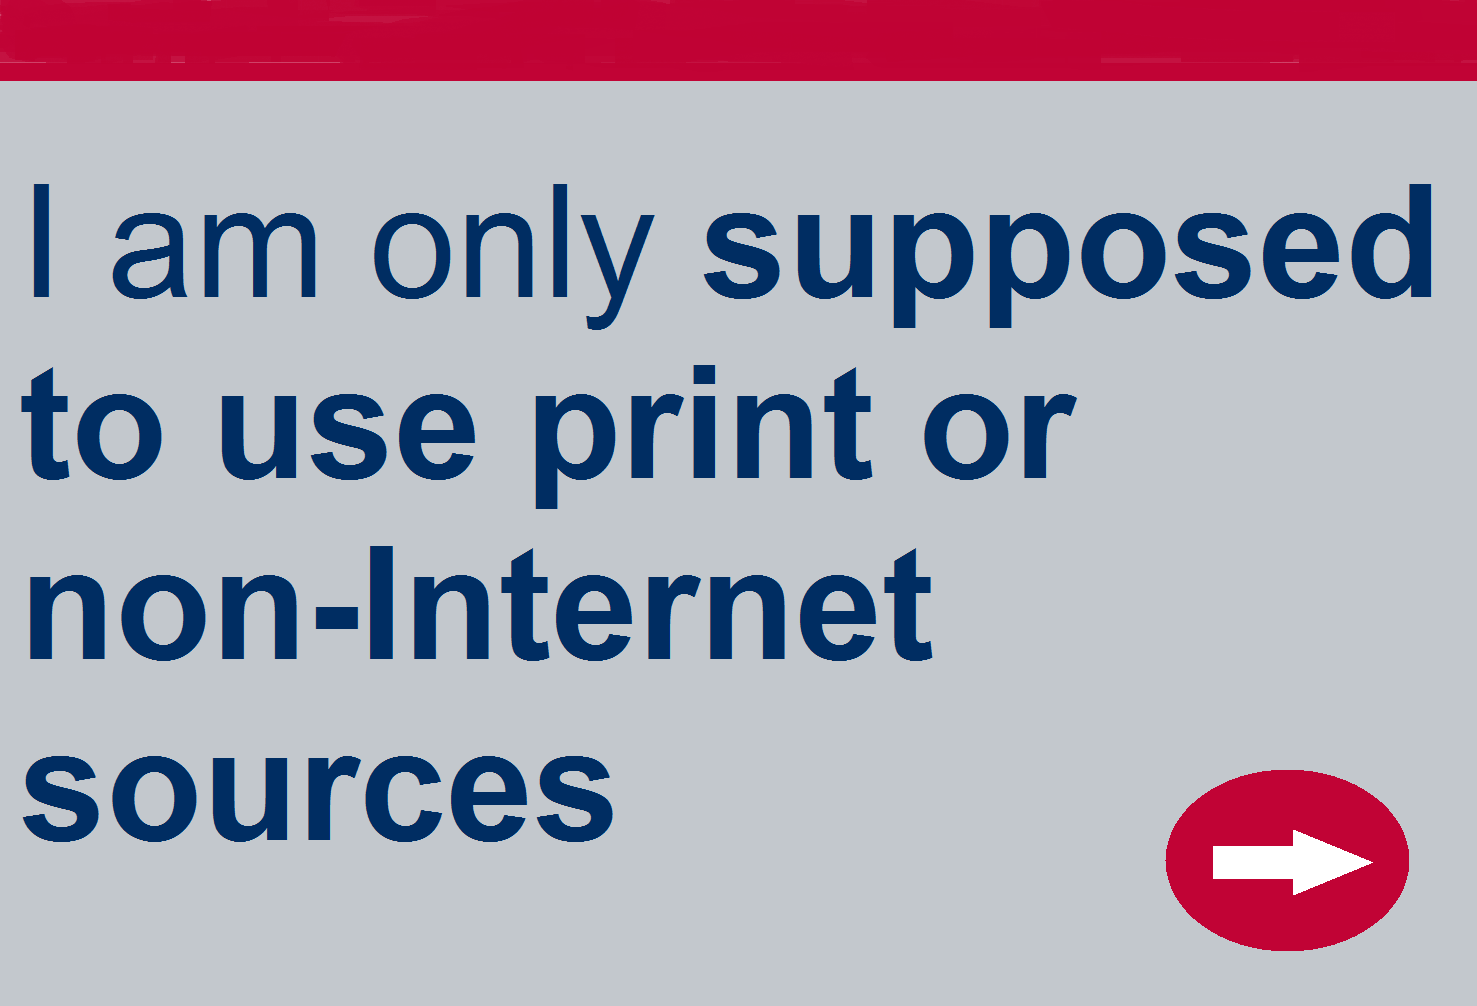 Supposed to use print or non-Internet sources